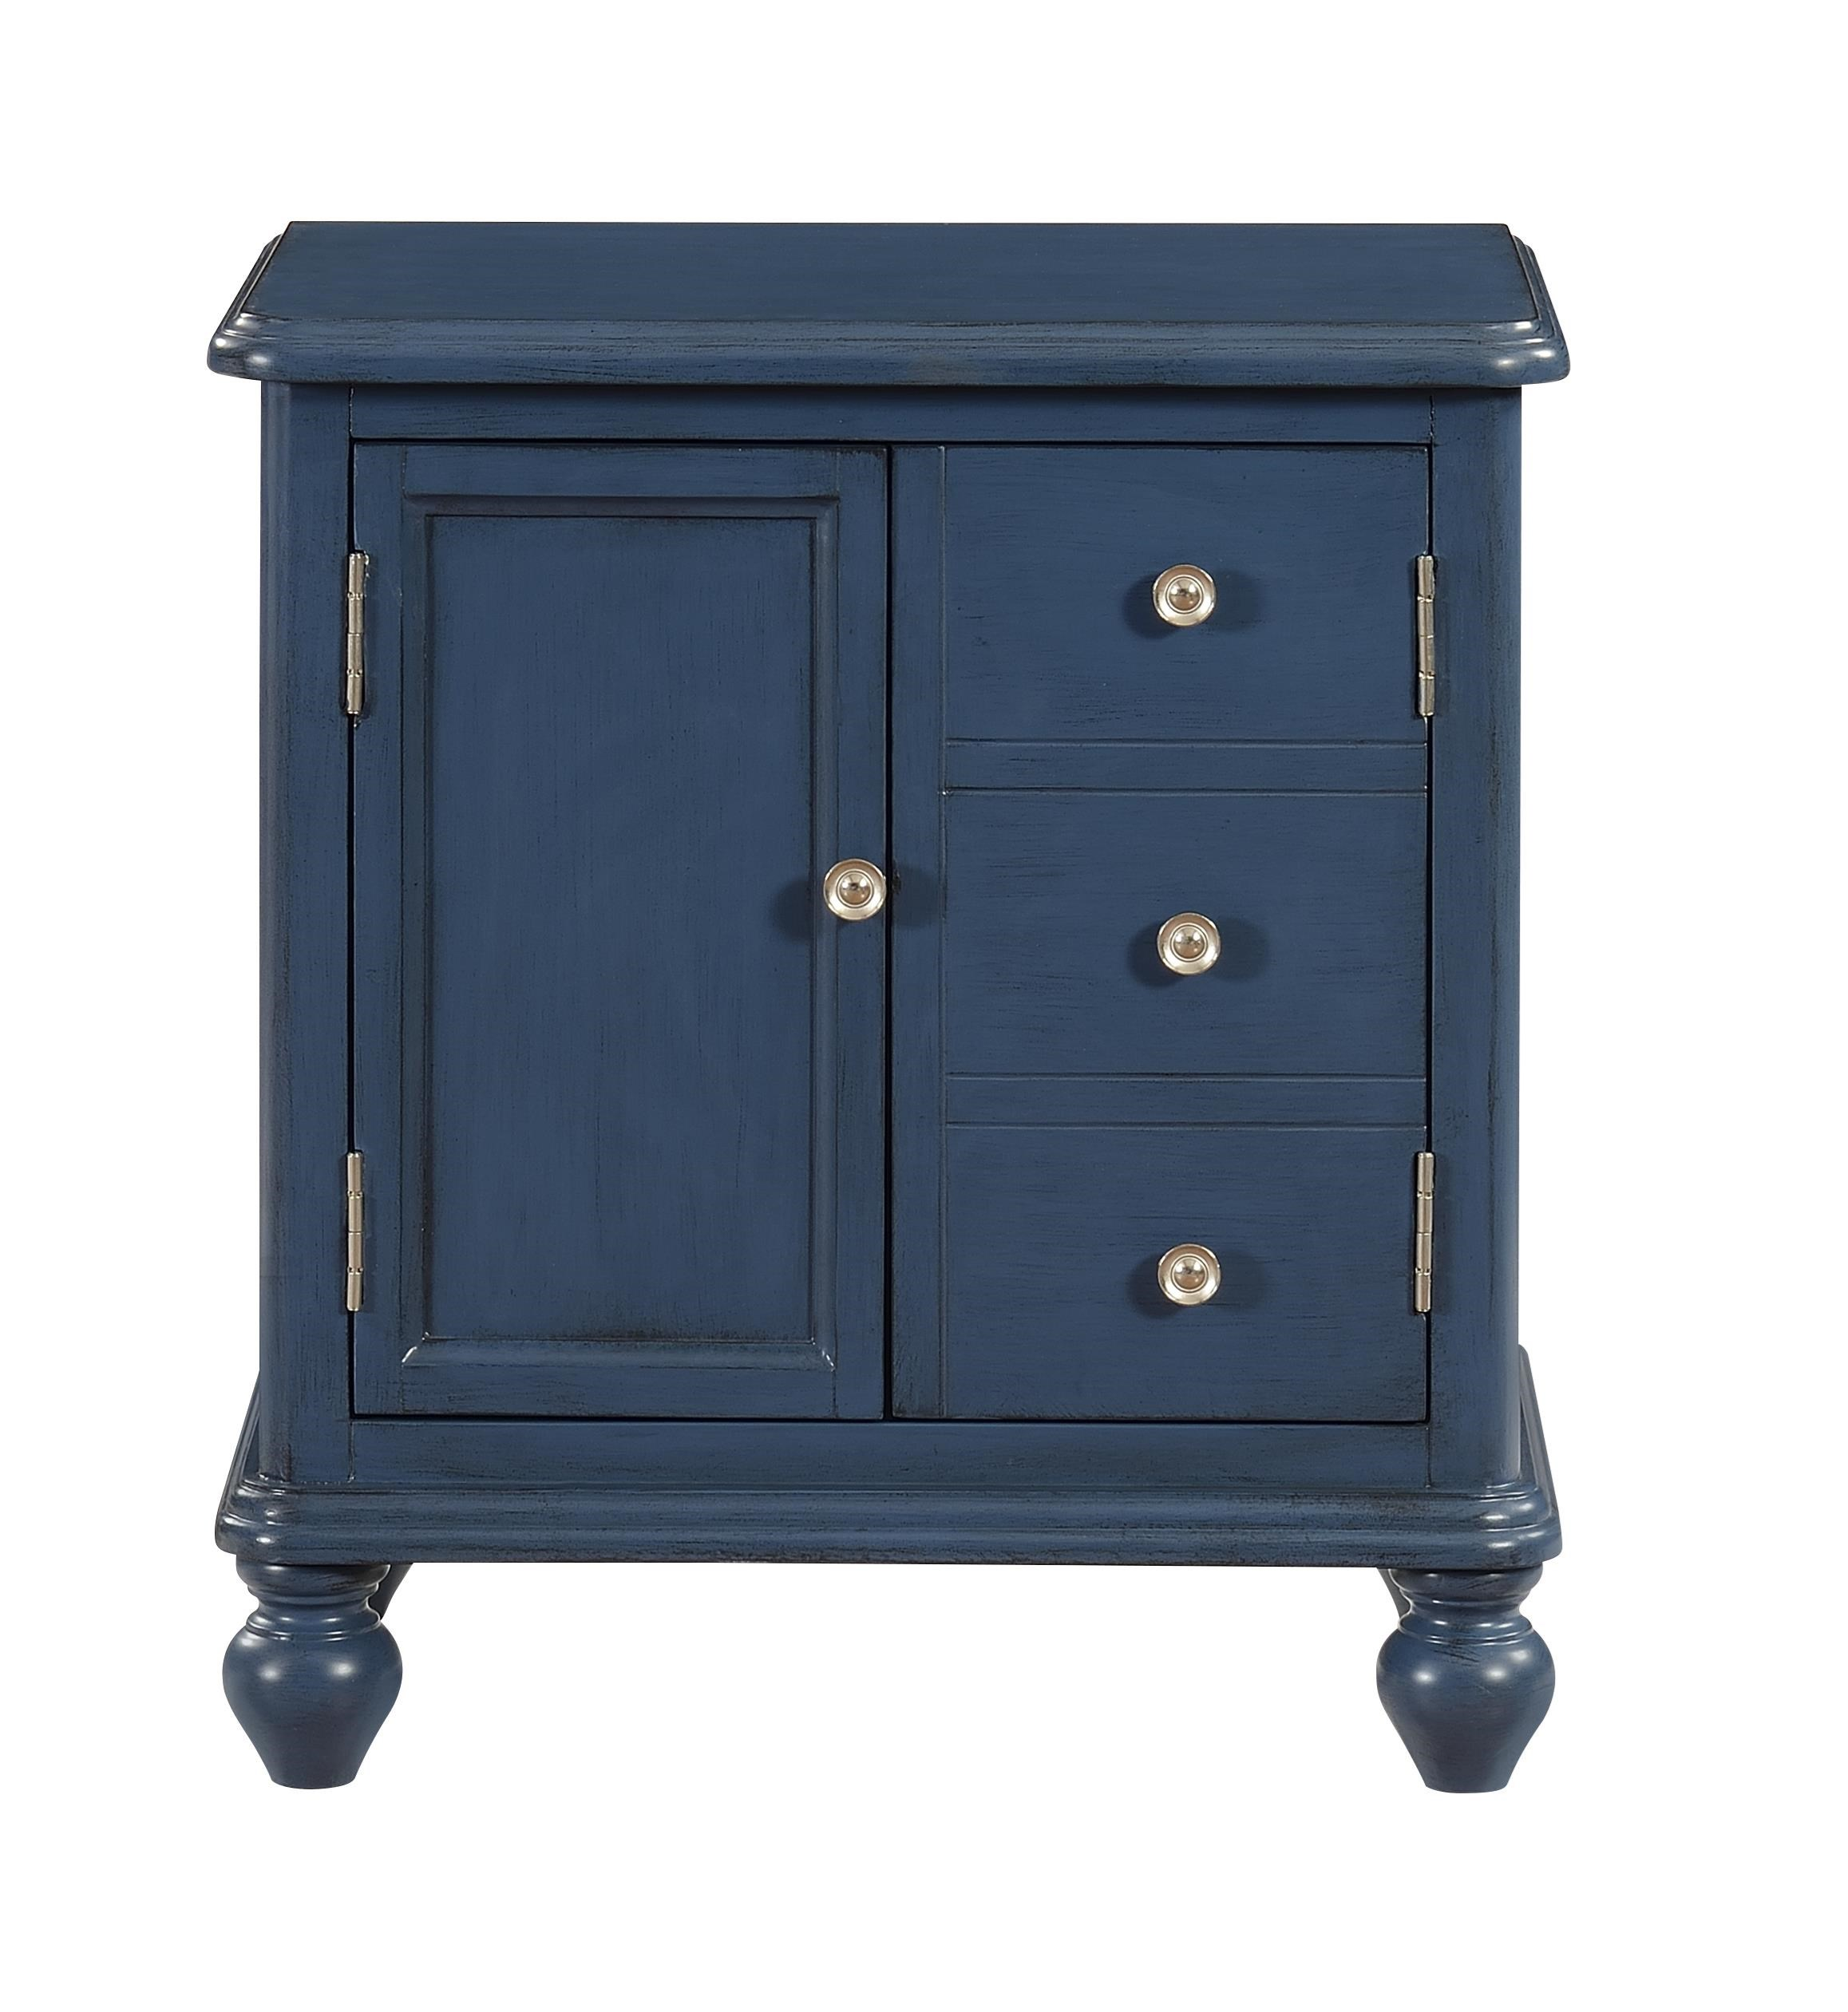 Morris Home Furnishings Morris Home Furnishings Toronto 2 Drawer Cabinet - Item Number: 590608590